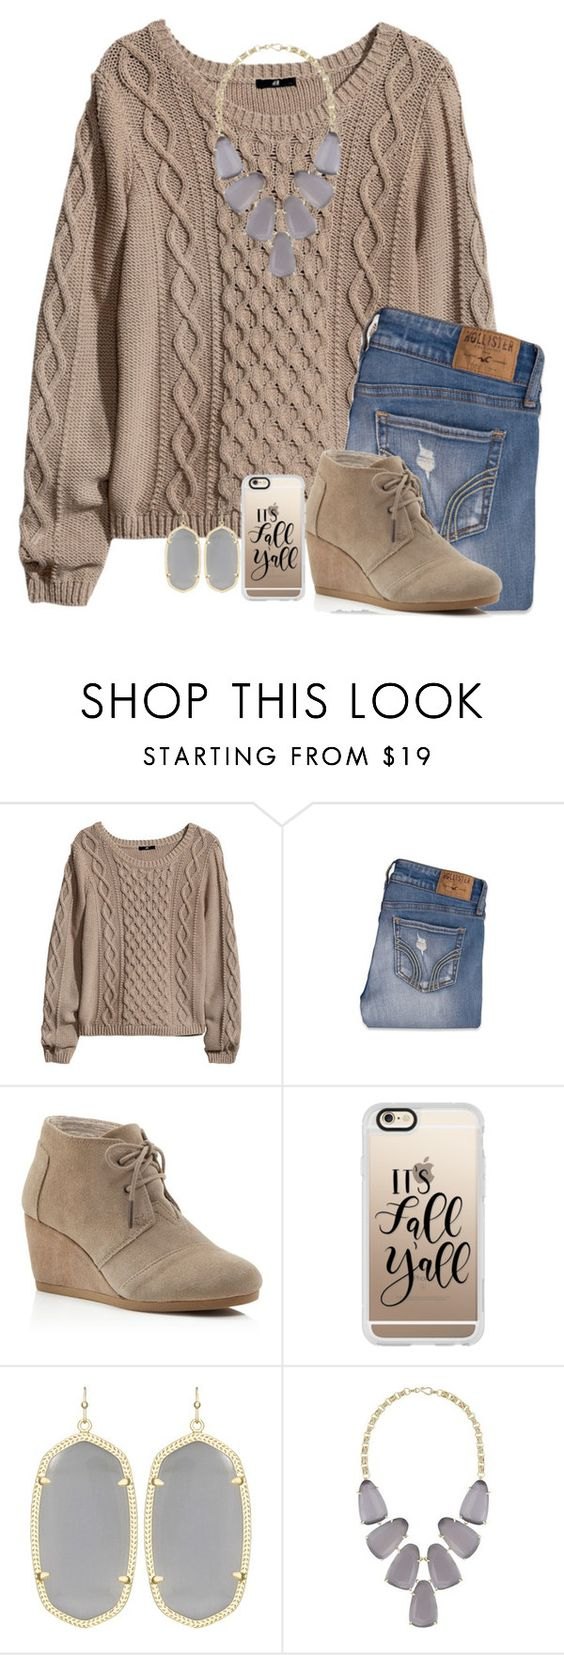 """""""i love fall🍂"""" by mmadss ❤ liked on Polyvore featuring H&M, Hollister Co., TOMS, Casetify and Kendra Scott"""